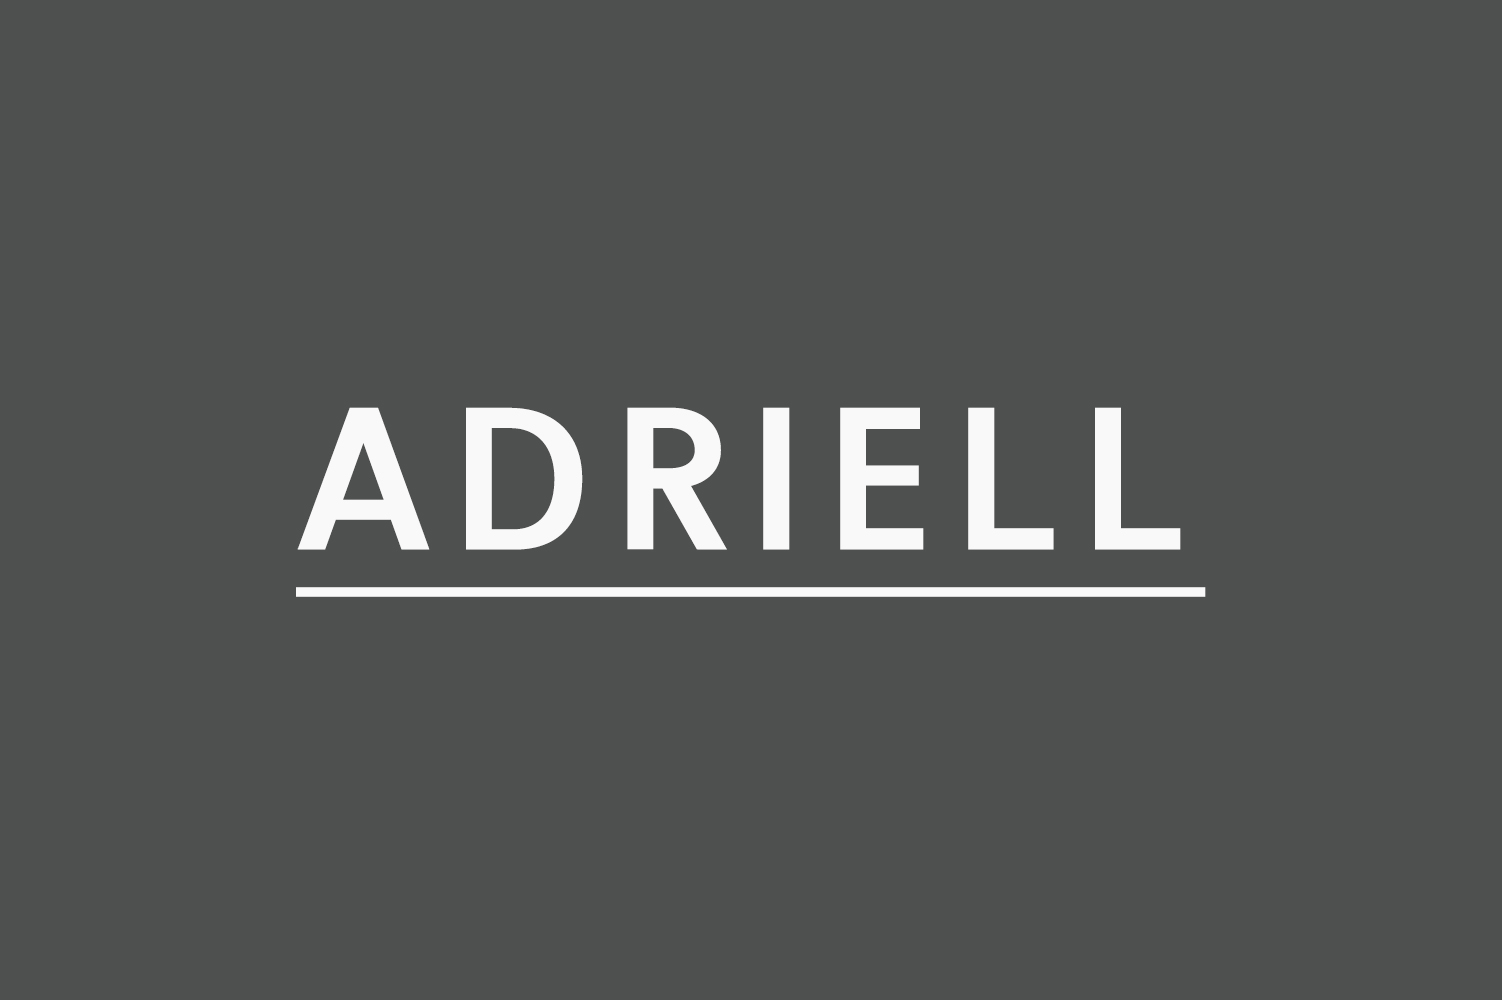 Adriell Sans Serif Font Family example image 1